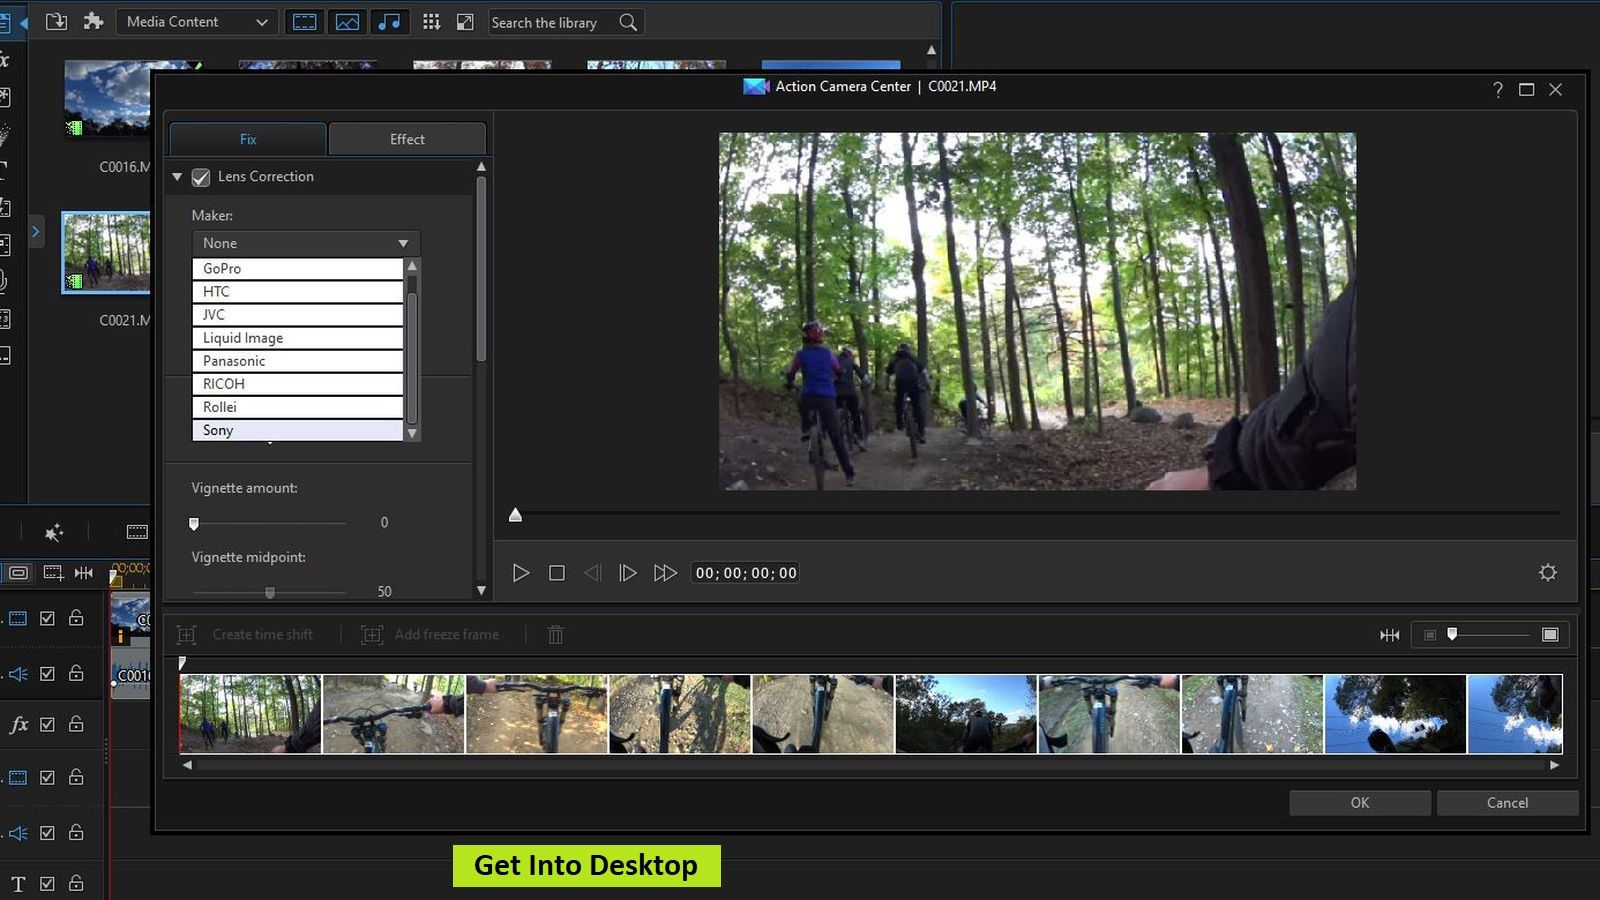 OpenShot Video Editor 2 4 2 Free Download - Get Into PC